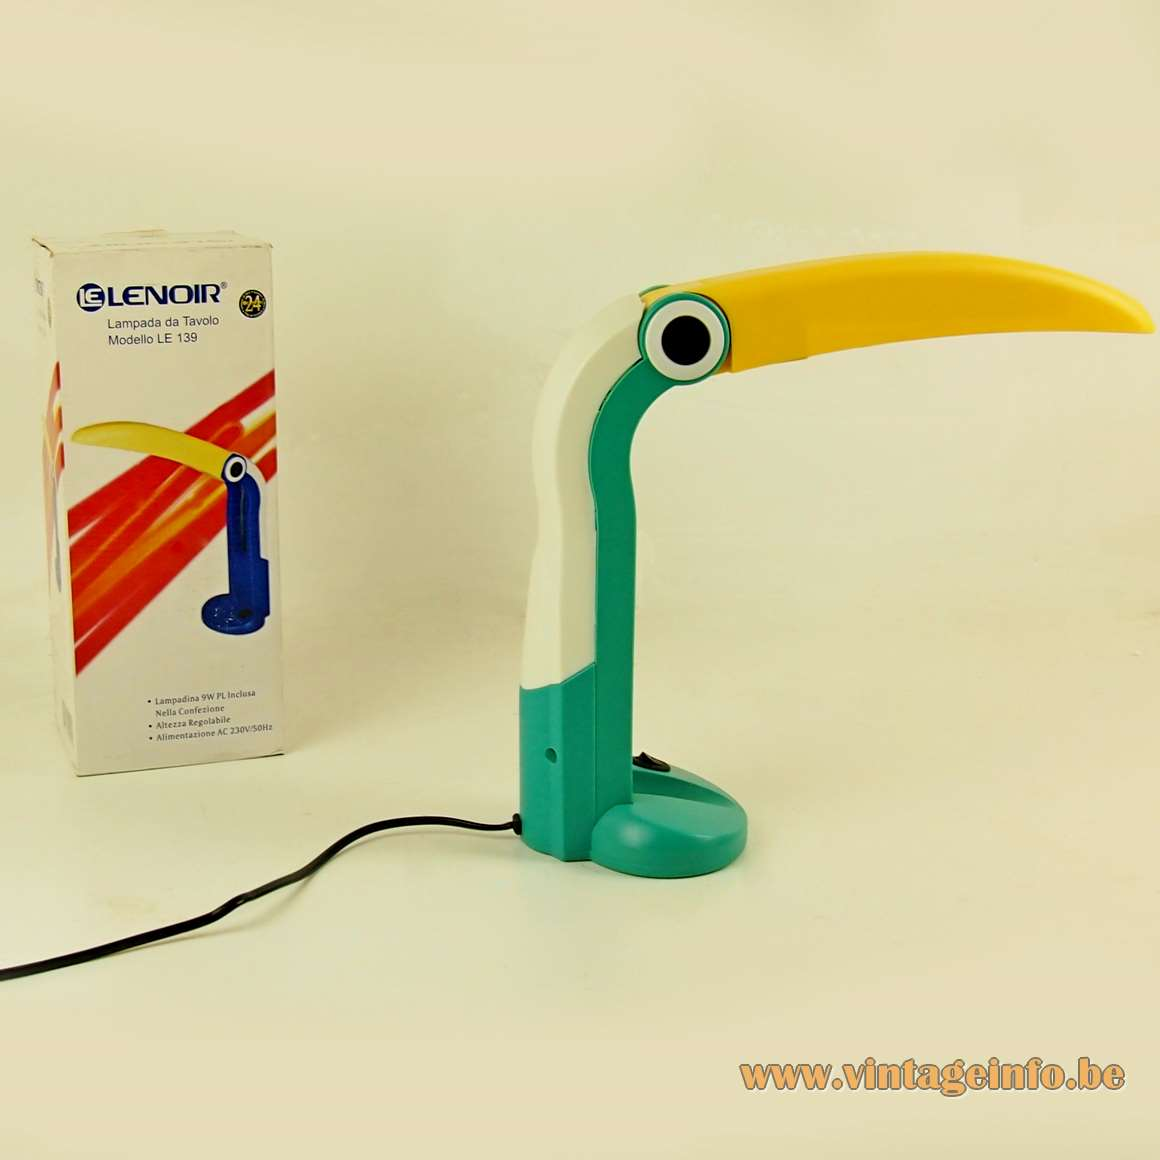 Huangslite Toucan Desk Lamp - Lenoir